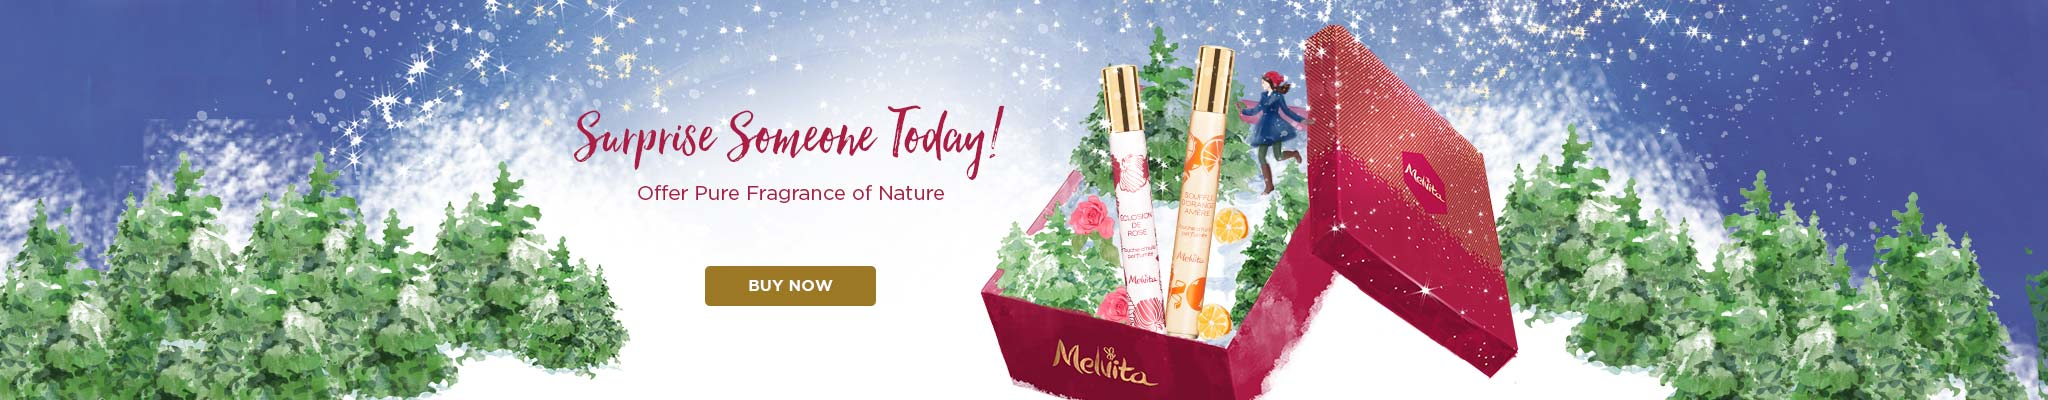 Surprise Someone Today! | Offer Pure Fragrance of Nature